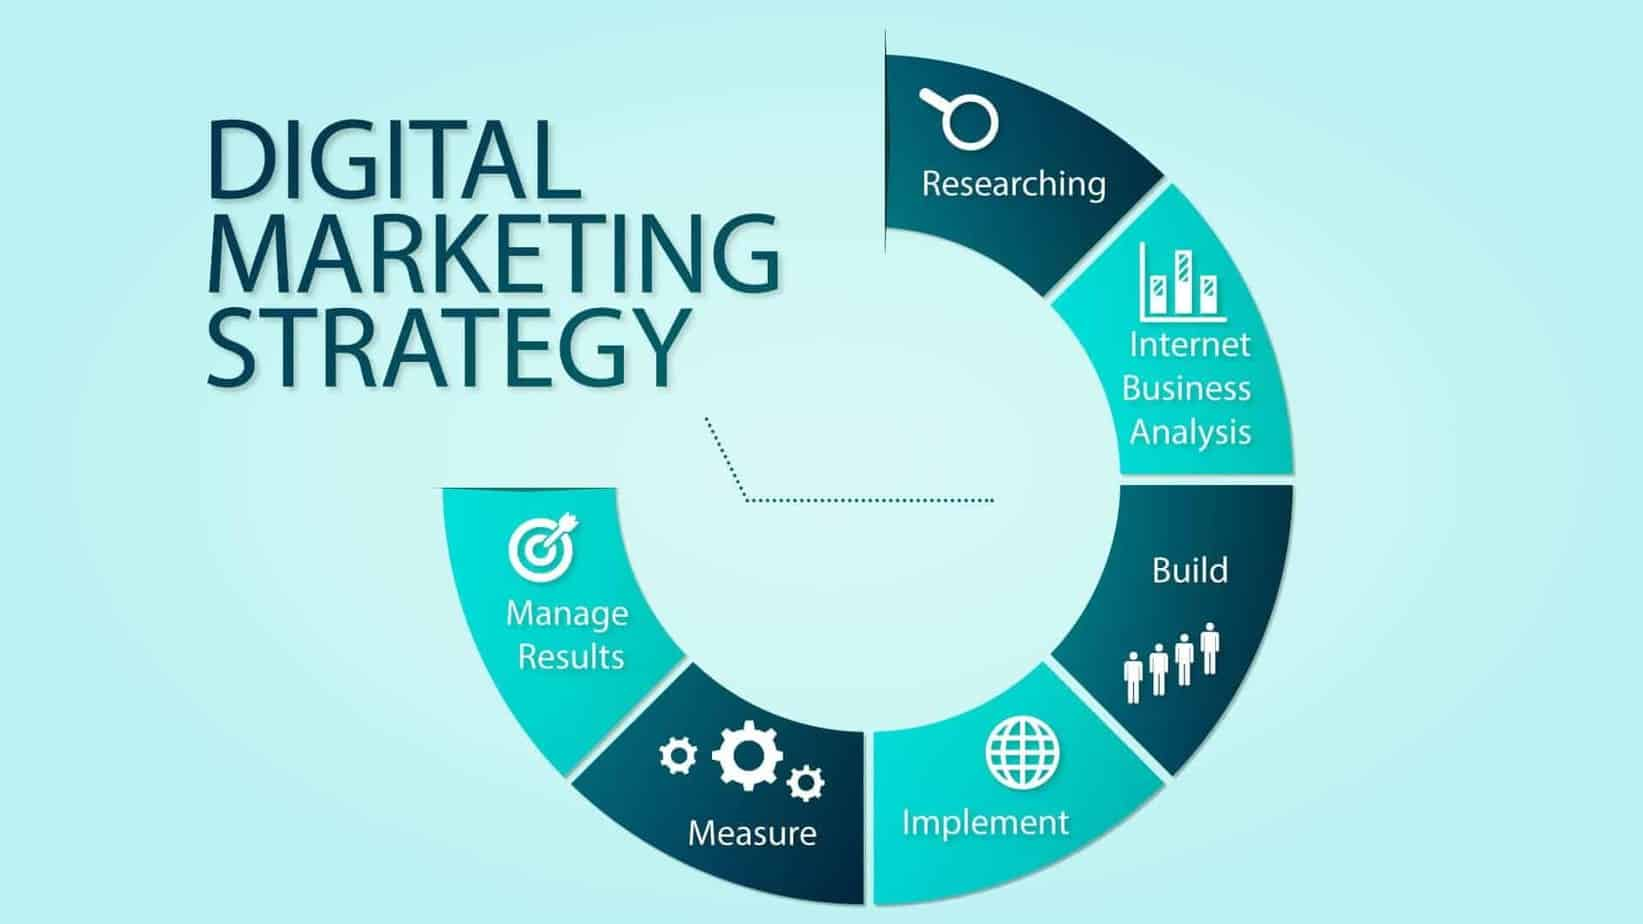 Create Digital Marketing Strategy 2019